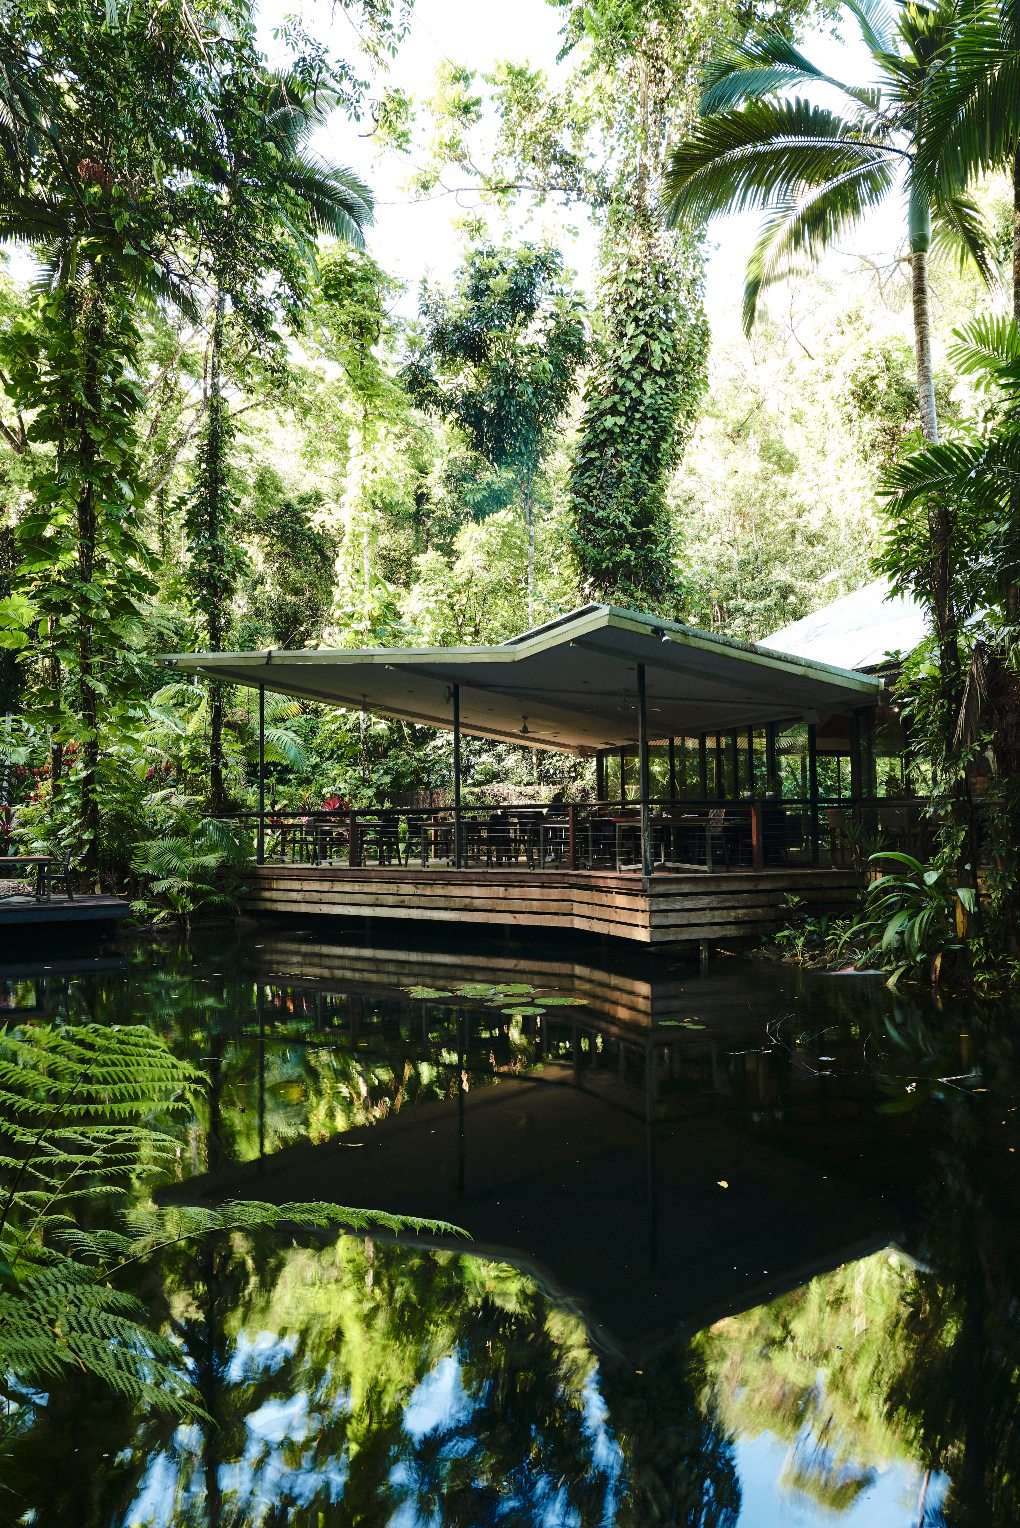 View of pond and outdoor seating area of nice restaurant in rainforest.